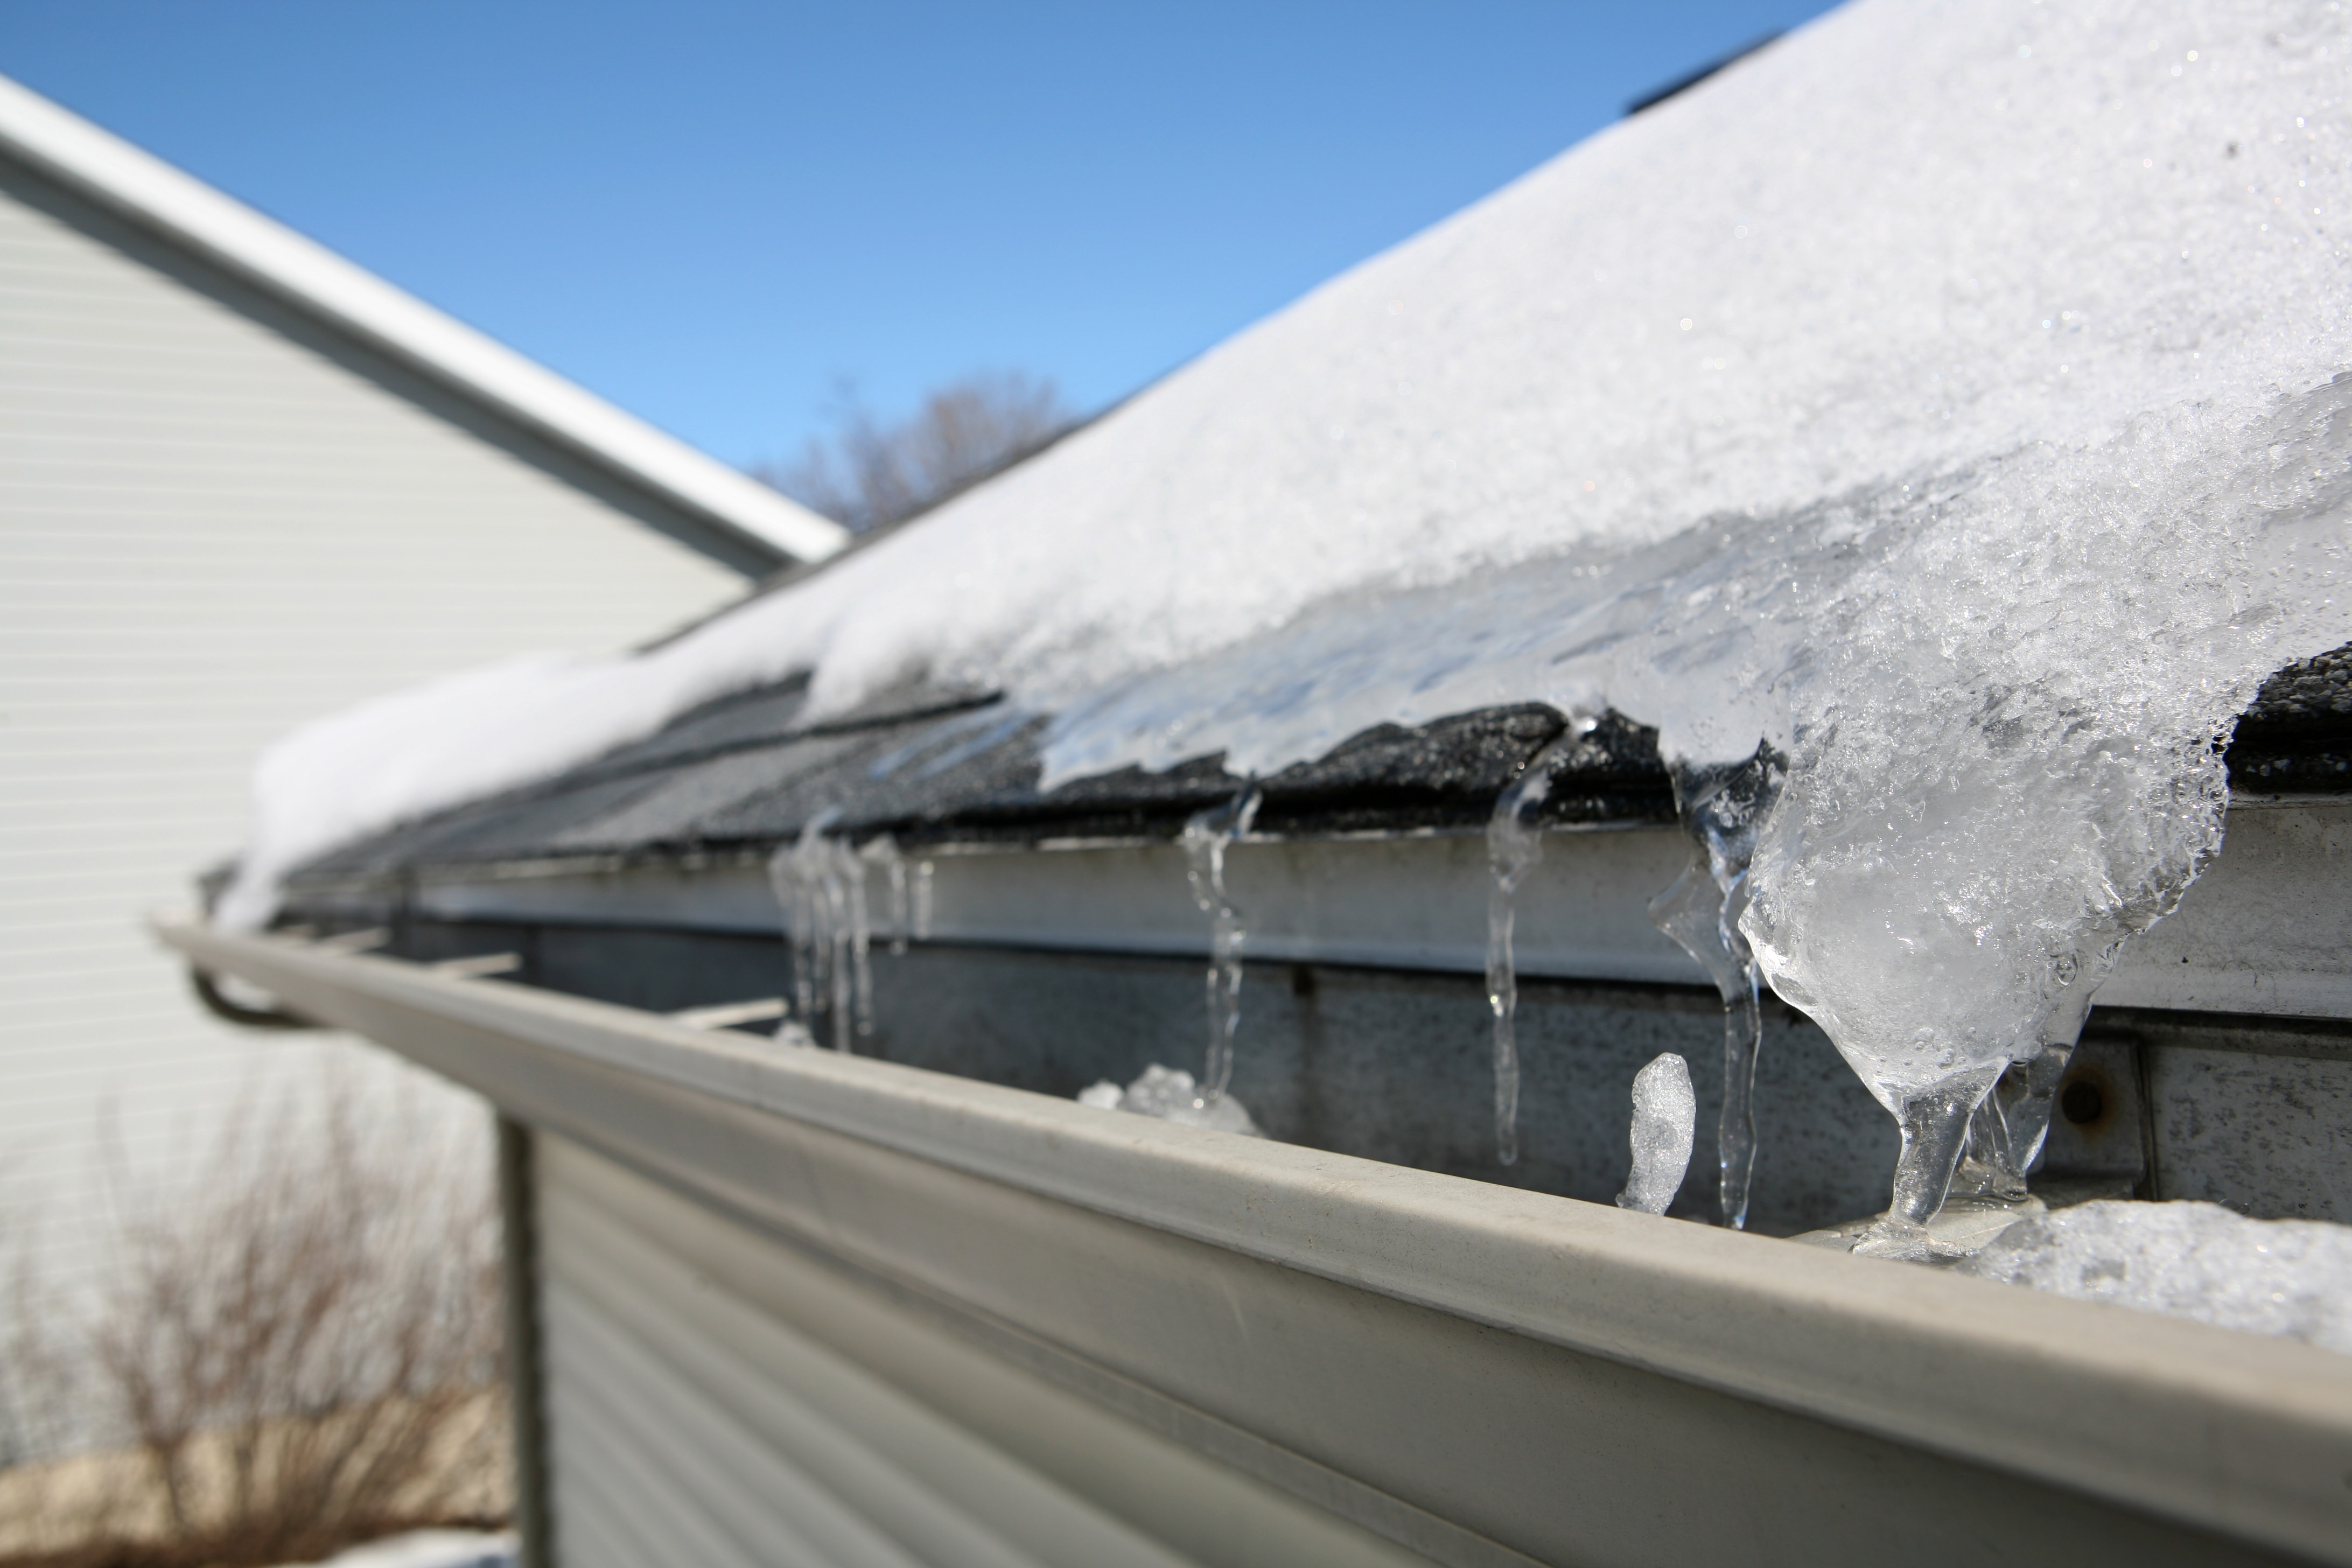 How To Prevent Winter Roof Amp Gutter Damage Zephyr Thomas